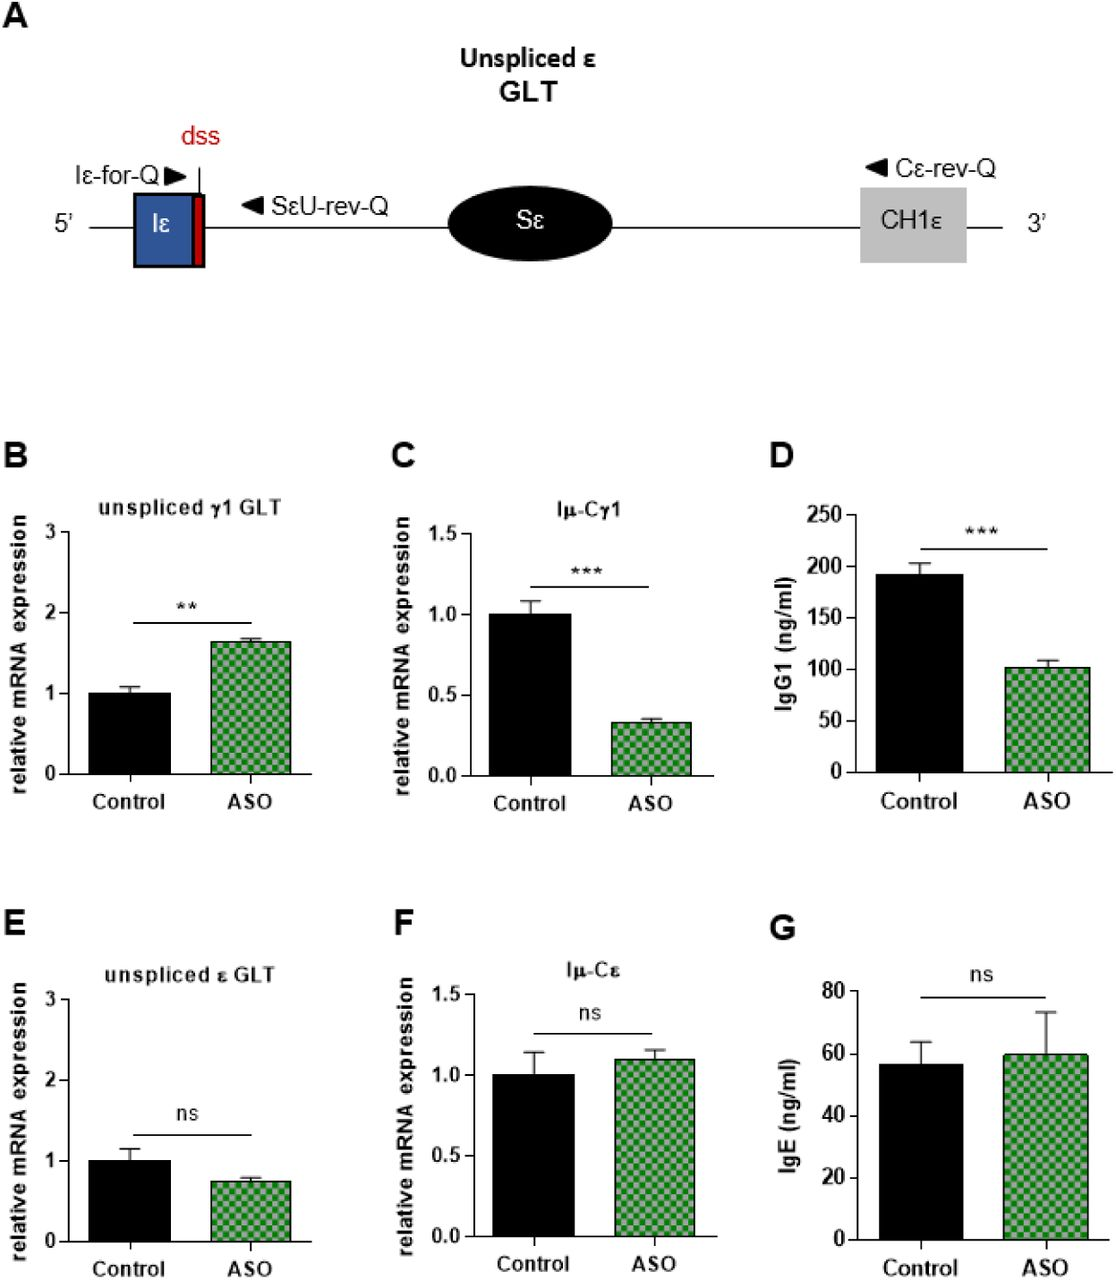 Specific IgG1 class switching inhibition in B cells treated by Iγ1 exon dss ASO Splenic B cells were isolated from C57BL/6 mice, stimulated with anti-CD40 + IL4 and treated with 2 μM Iγ1 dss ASO (ASO) or an irrelevant ASO (control) during 2 days (B, E) or 4 days (C, D, F, G). (A) Schematic representation of unspliced ε GLT. Iε, ε I exon; Sε, ε switch region; CH1ε, ε constant exon 1; dss, donor splice site. (B, E) Unspliced γ1 (B) and ε (E) GLTs expression monitored as described in figure 2 . Iε-for-Q and SεU-rev-Q primers, described in schema A, were used for ε GLTs expression determination. (C, F) Post-switch Iμ-Cγ1 and Iμ-Cε mRNA expression monitored as described in figure 2 . (D, G) Quantification of IgG1 and IgE in culture supernatants by ELISA. (B-G) Data are means ± SEM of two independent experiments, n=3 to 4 for each group. Unpaired two-tailed Student's t test was used to determine significance. ns: non significant, ** P